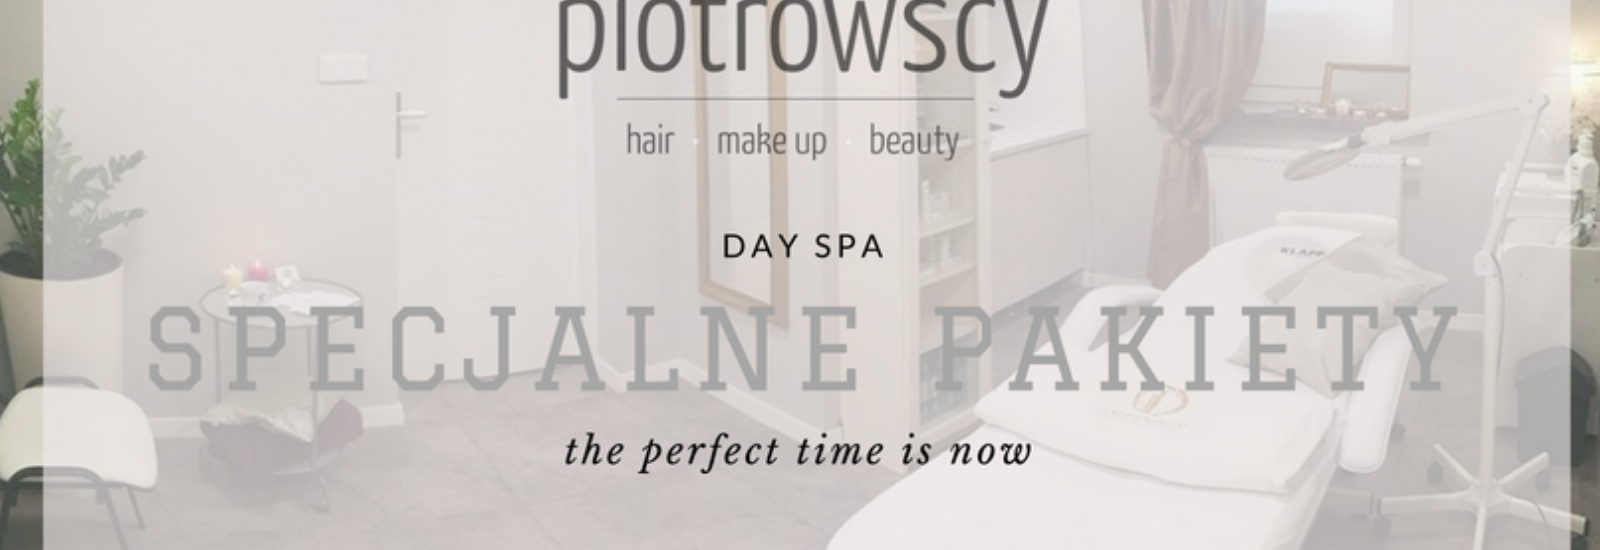 Piotrowscy Hair Make up Beauty, Wrocław, hand-crafted-kopia